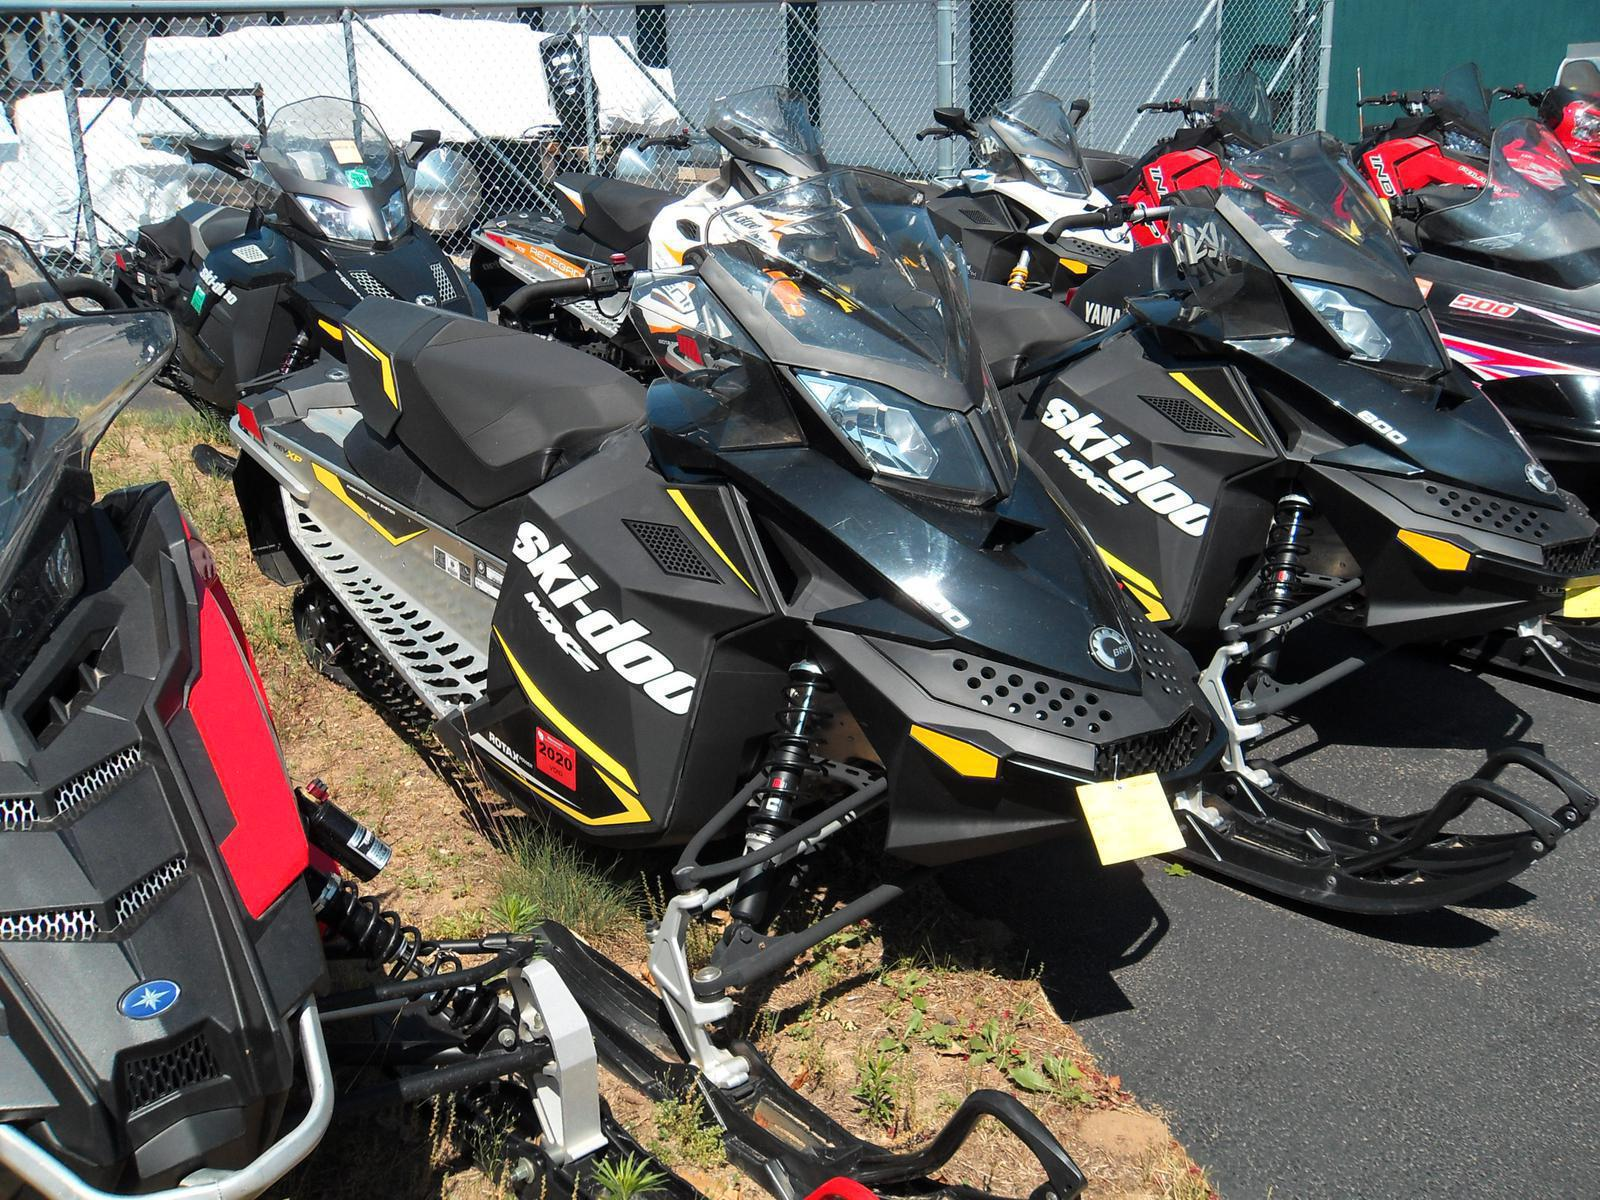 Inventory from Ski-Doo Track Side Eagle River, WI (715) 479-2200